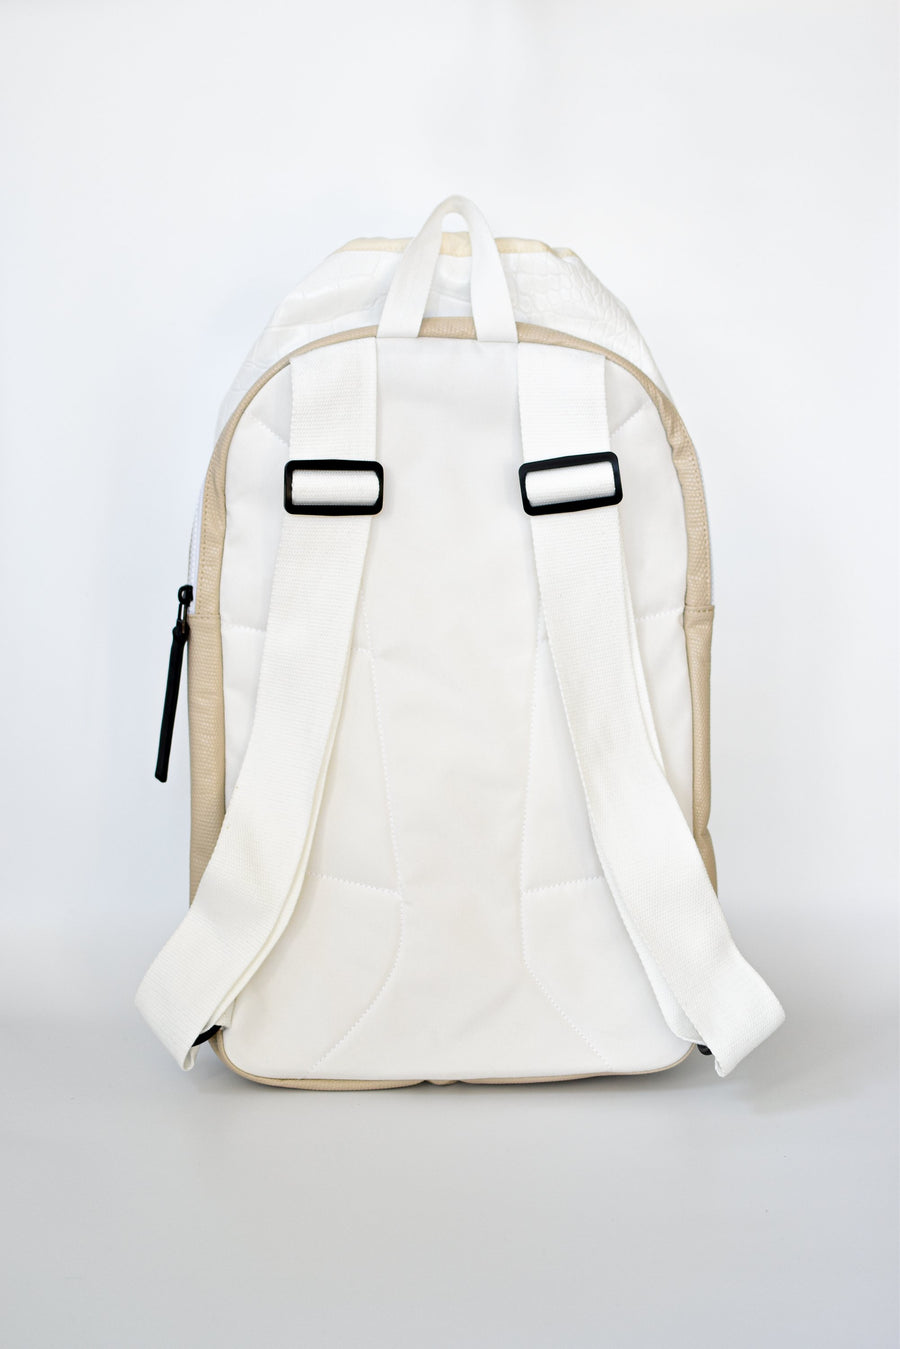 Back strap detail on off white croc embossed Casselberry backpack with cinch top and back zipper compartment.